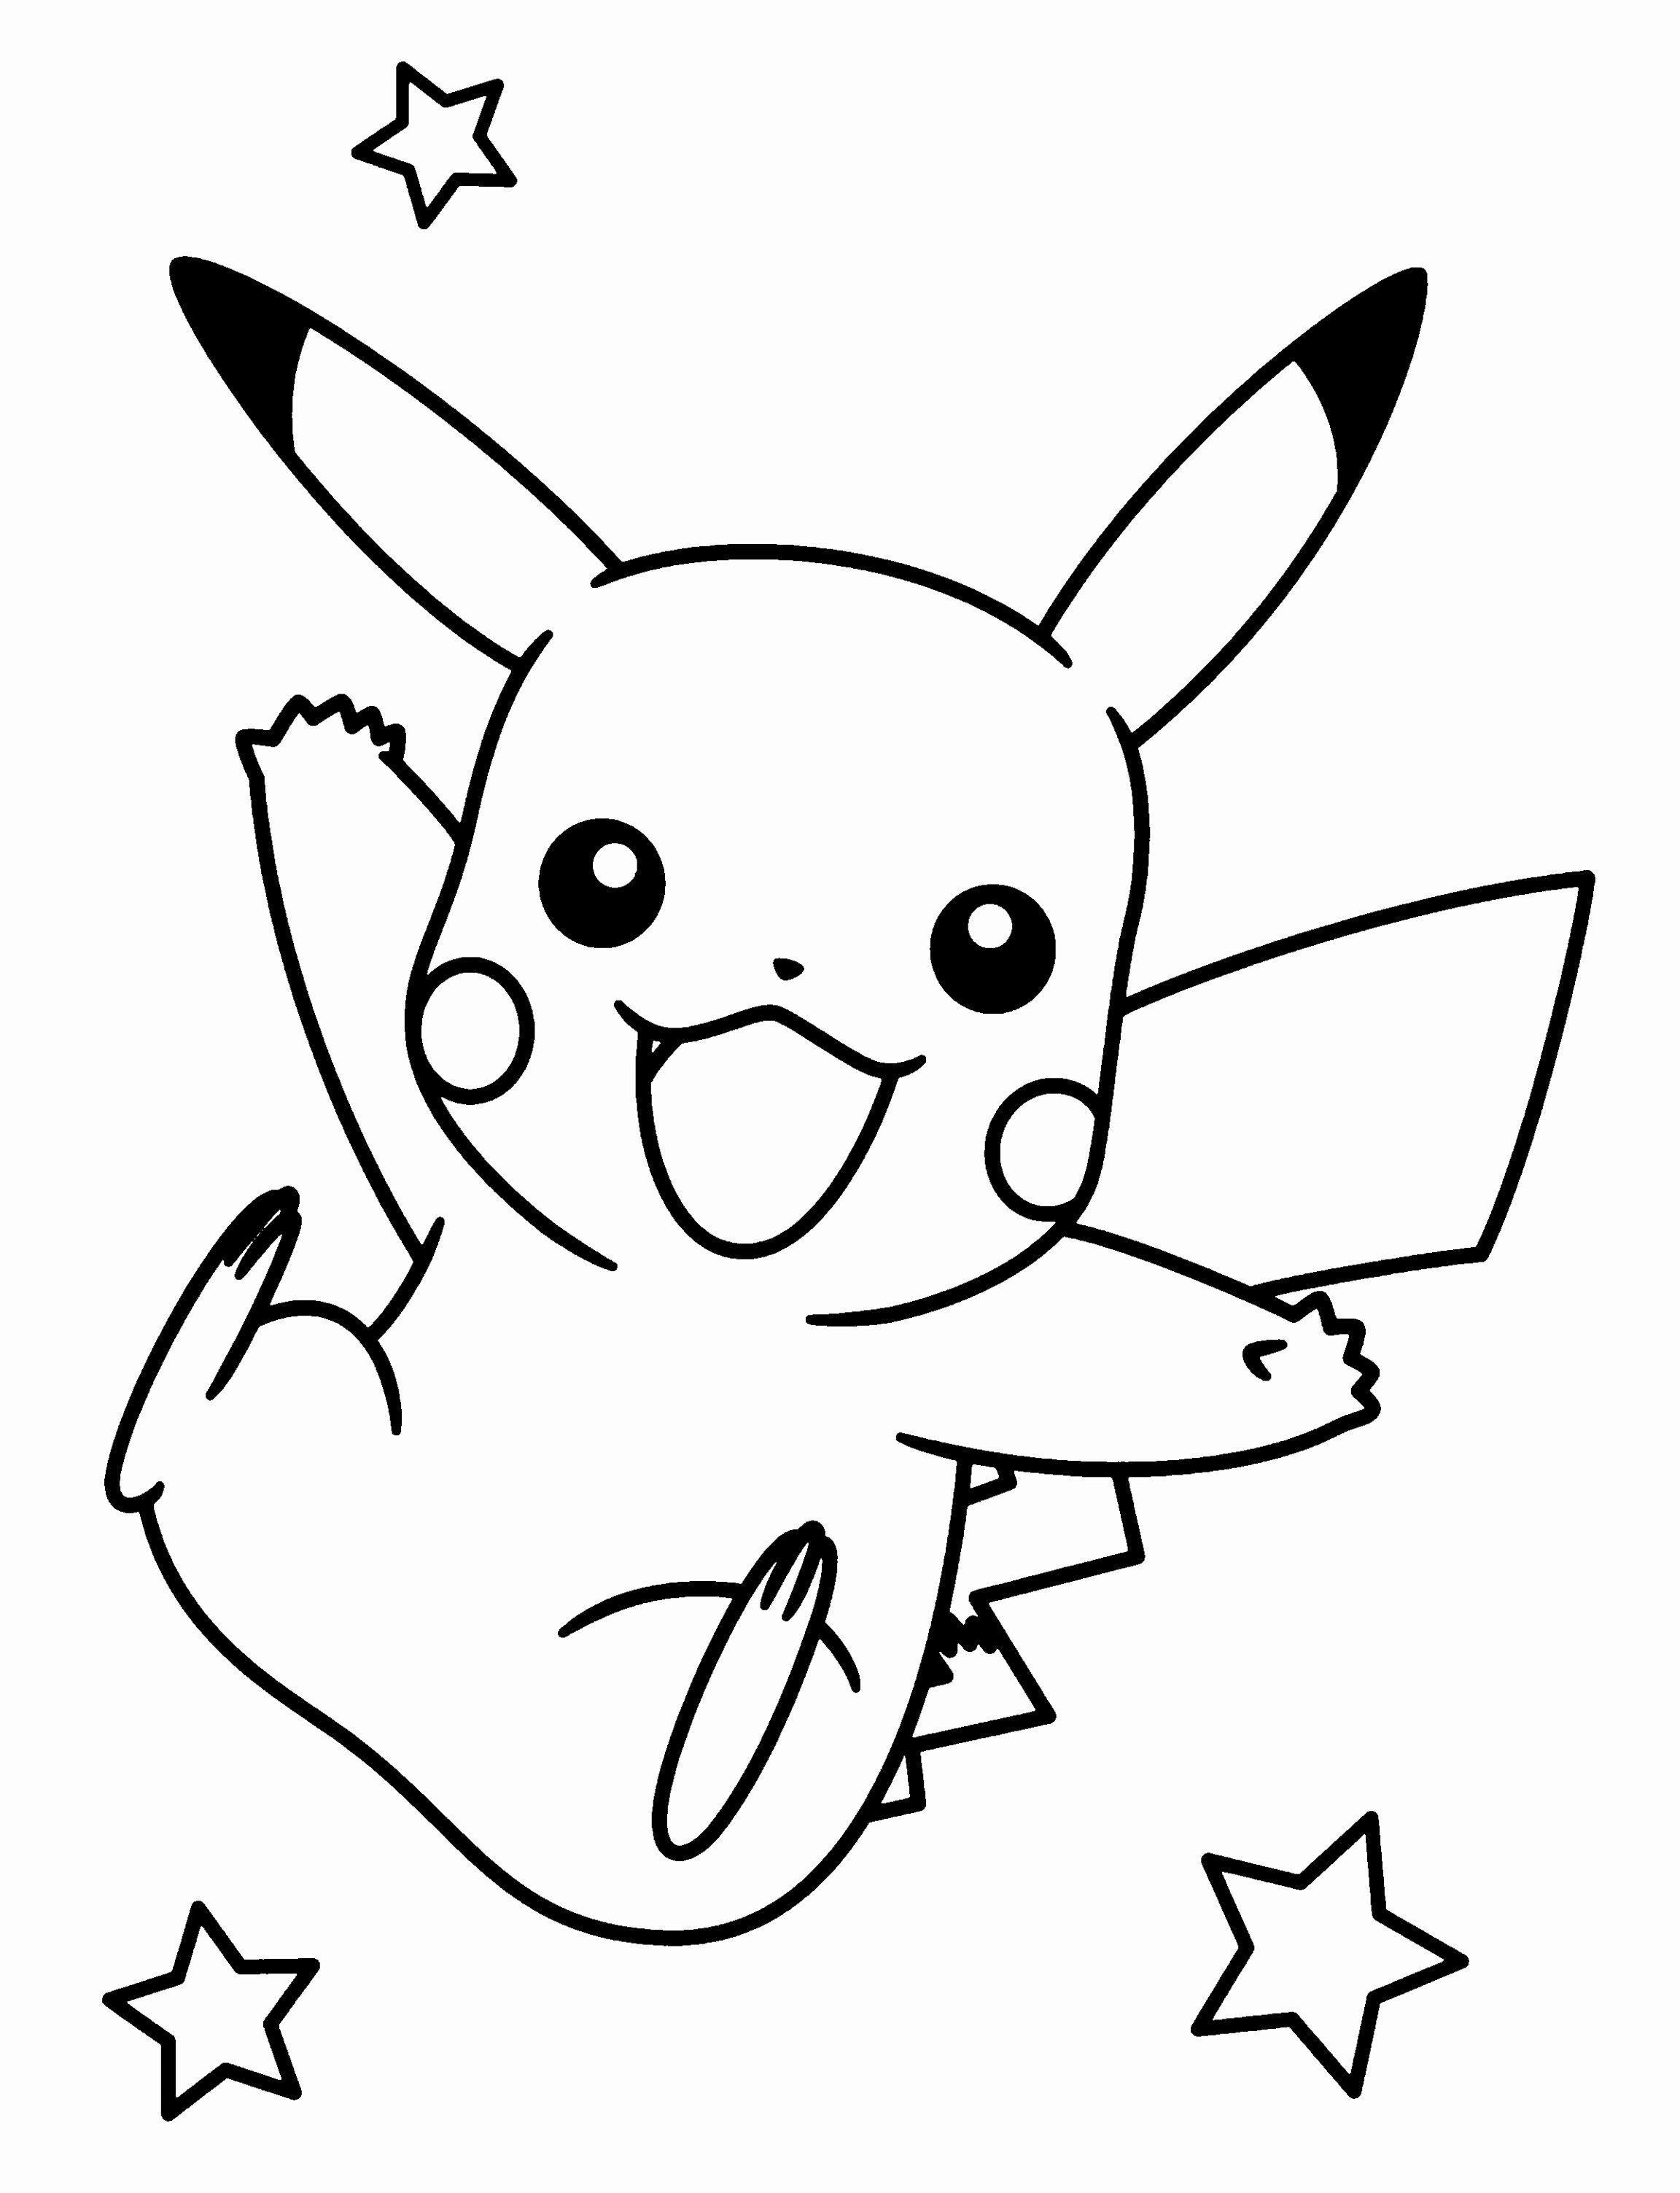 28+ Cute coloring pages for boys pokemon ideas in 2021